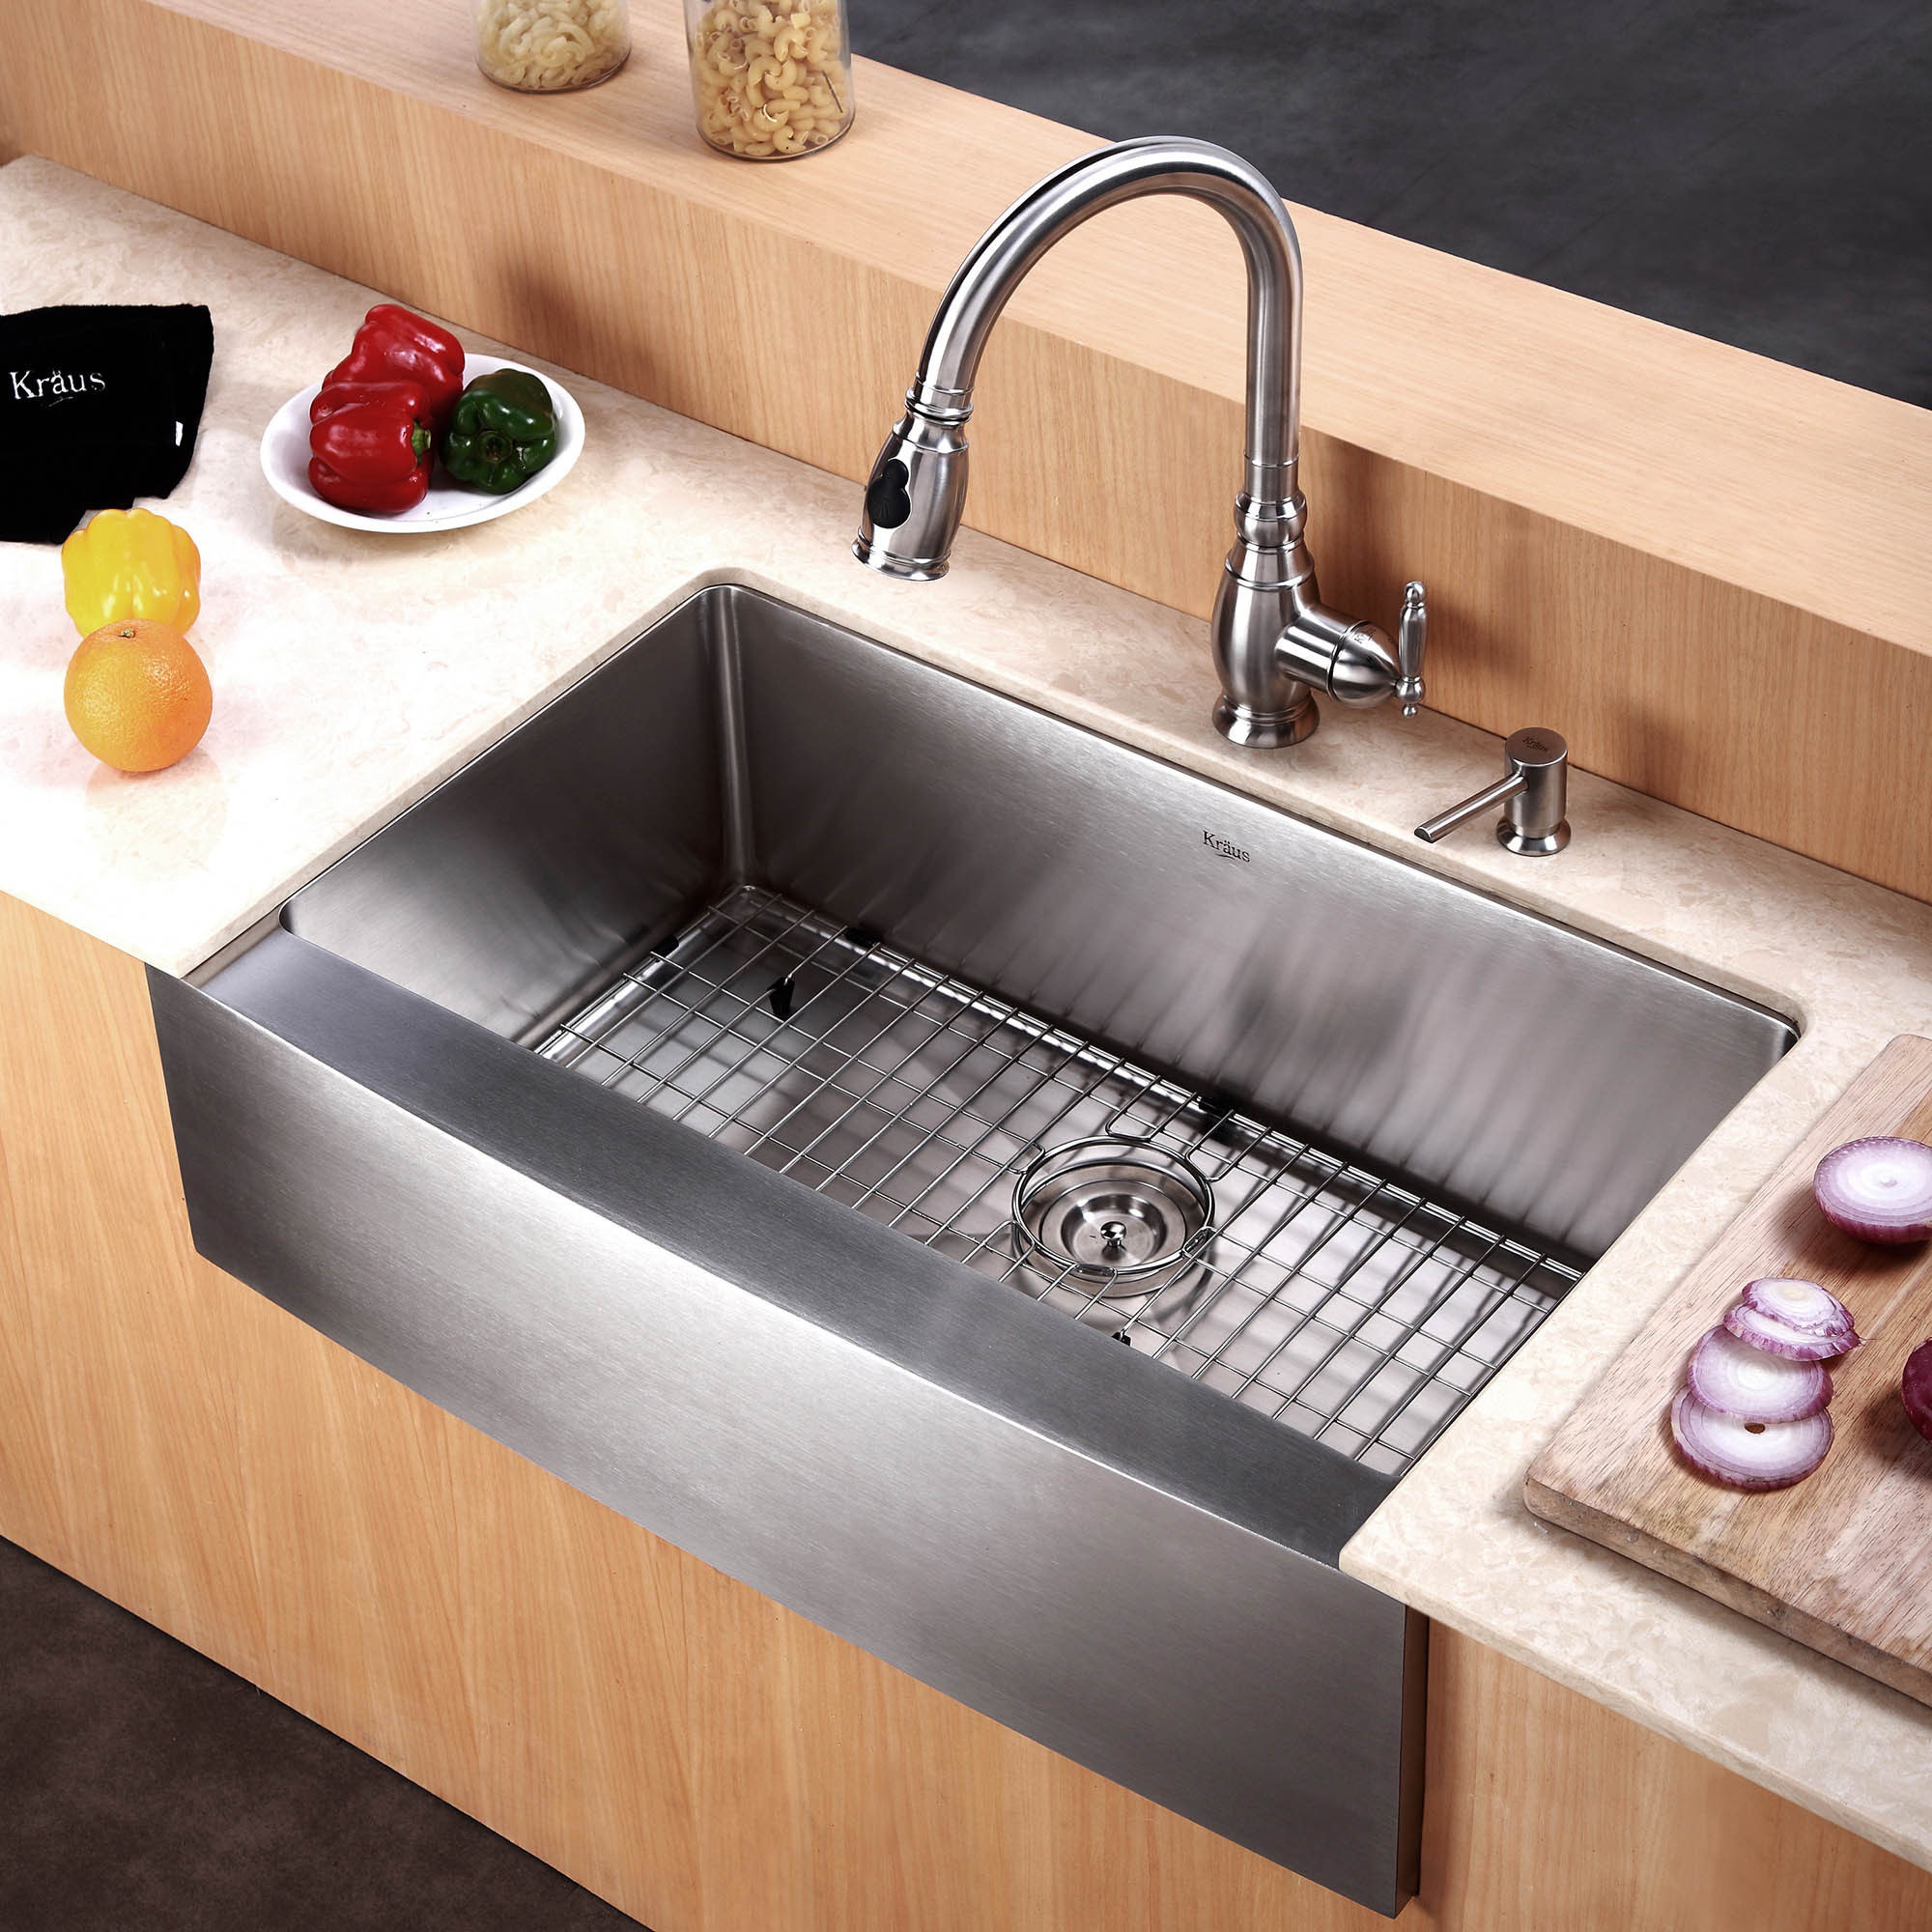 Kraus 30 inch farmhouse single bowl stainless steel kitchen sink kraus 30 inch farmhouse single bowl stainless steel kitchen sink with noisedefend soundproofing free shipping today overstock 11477700 workwithnaturefo